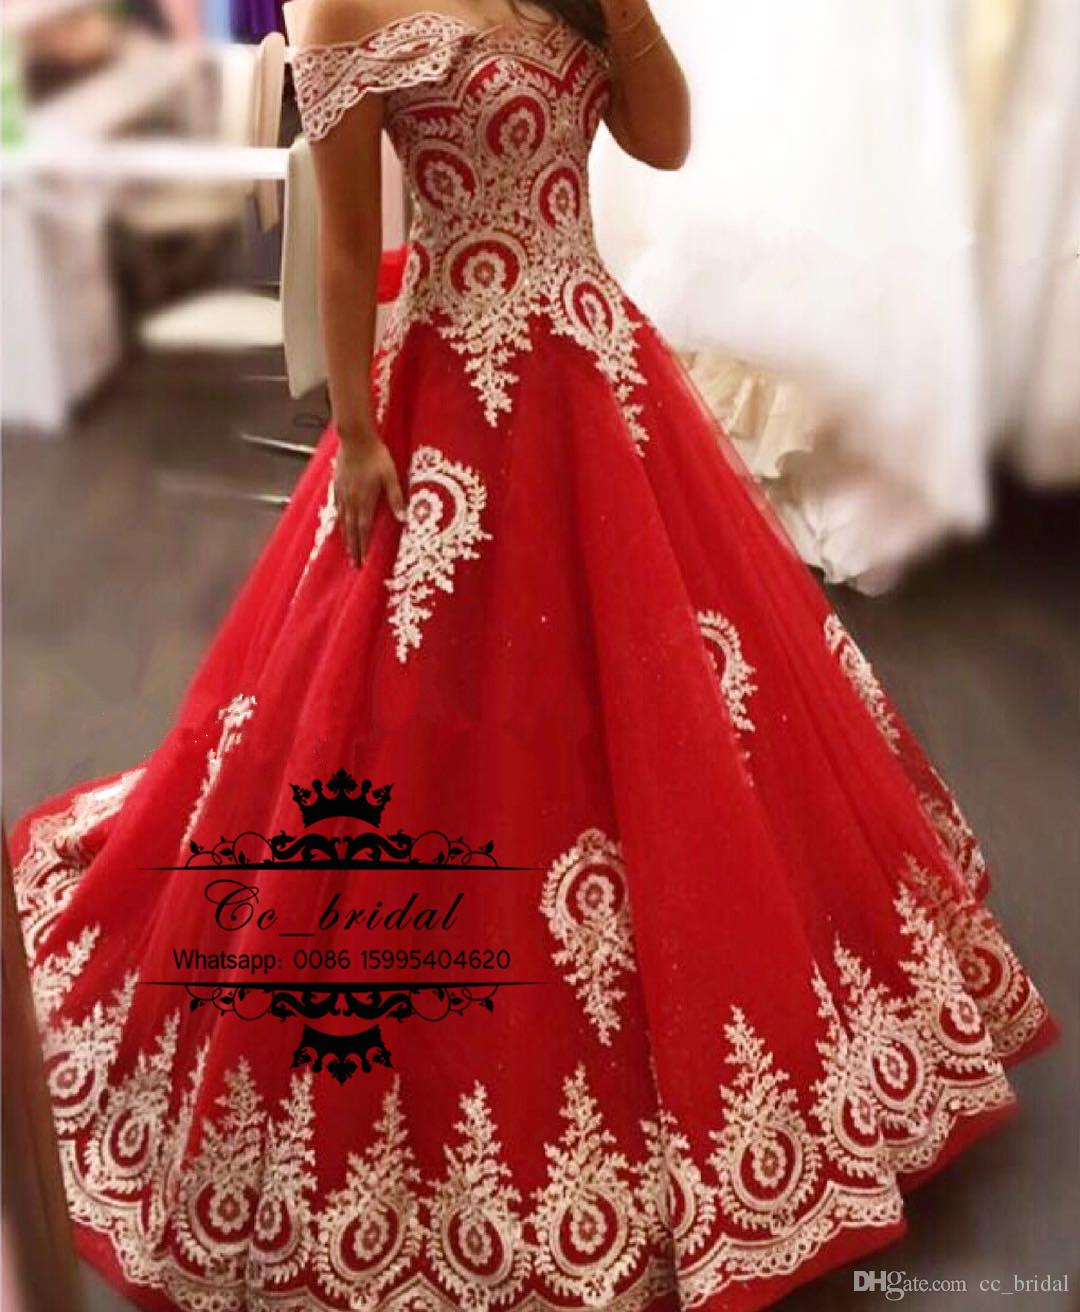 2017 New Red Ball Gown Prom Dresses Gold Appliques Lace Long Evening ...